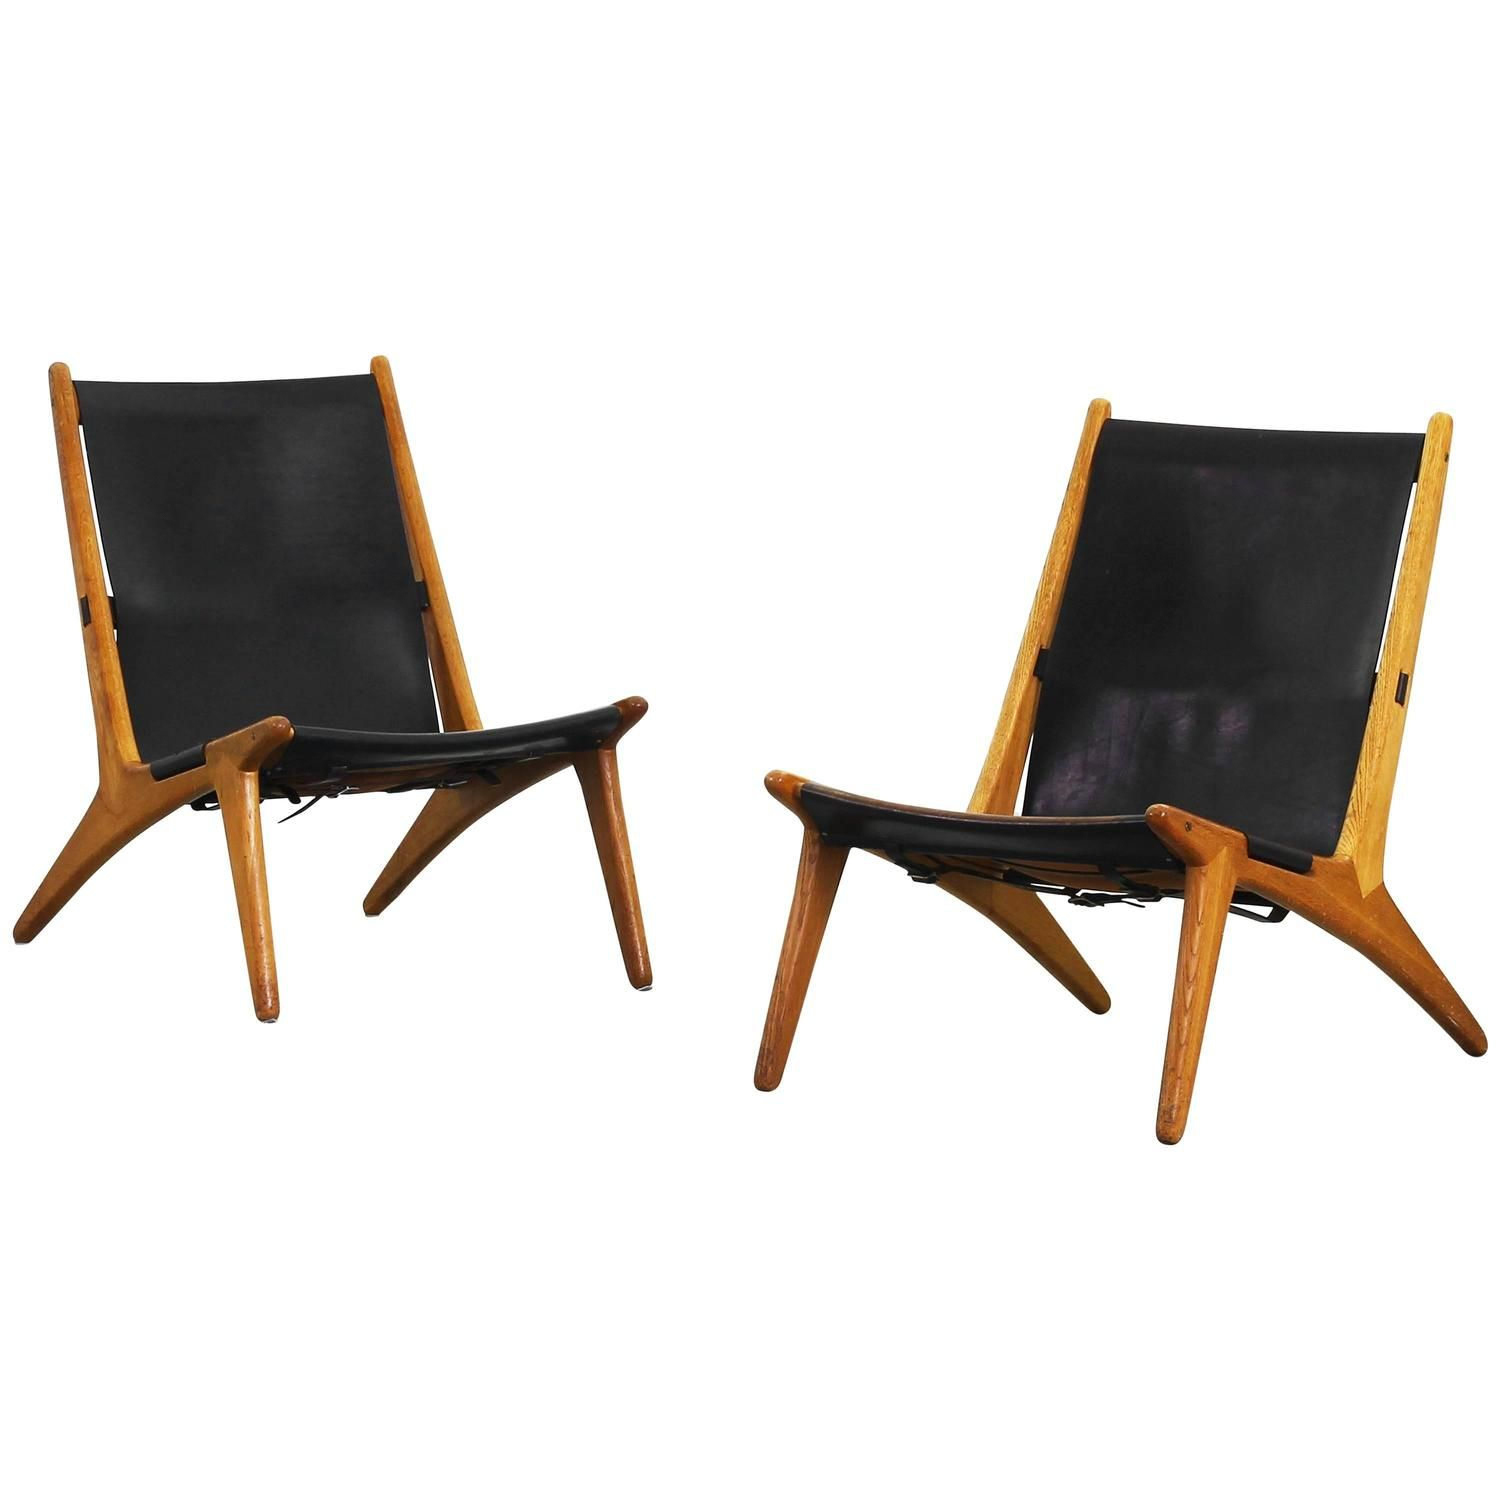 Pair of Beautiful Lounge Hunting Chairs by Uno & Osten